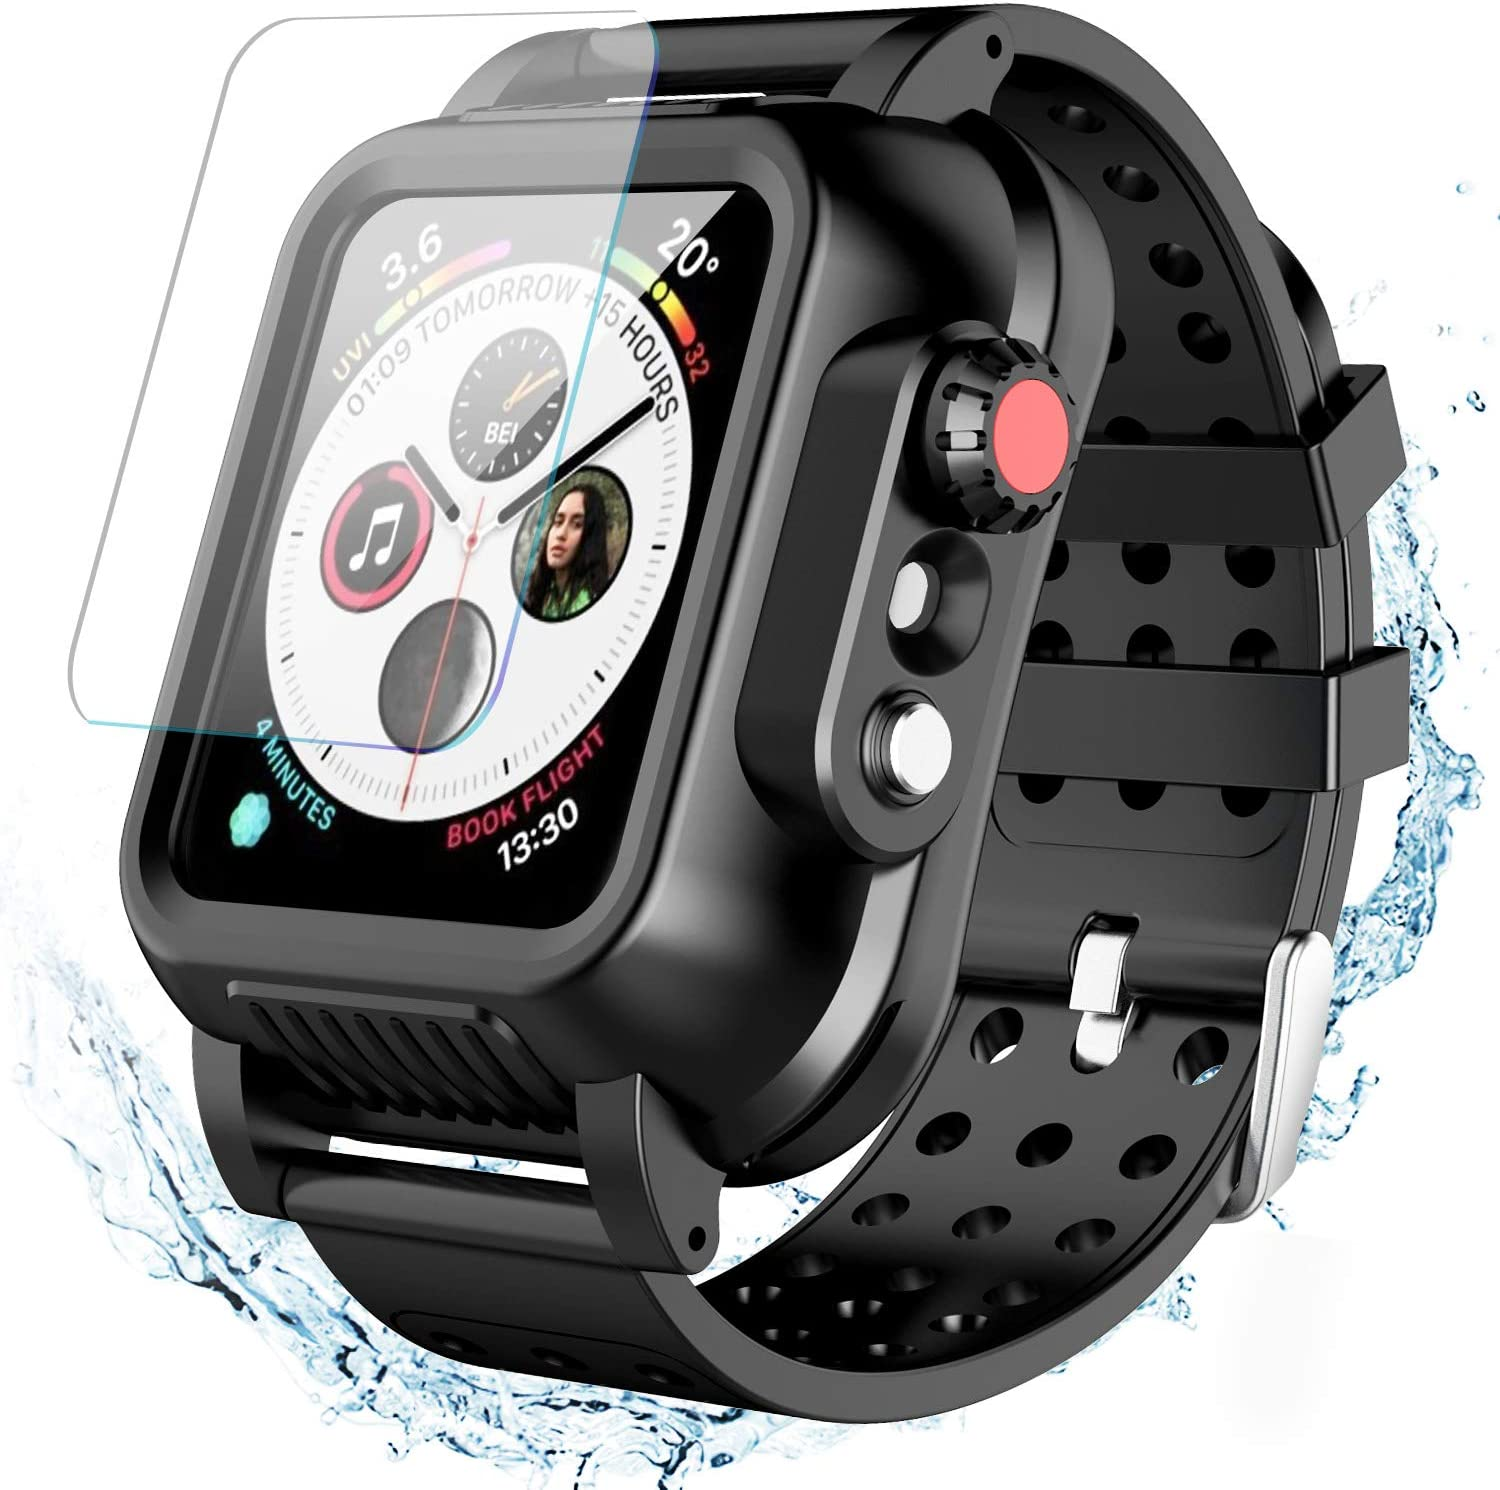 Temdan Waterproof Apple Watch Series 4 40mm Case with Band, New Designed Built-in Screen Protector Full Body Protective Rugged case with Soft Silicone Apple Watch Band for Apple Watch 40mm-(Black)